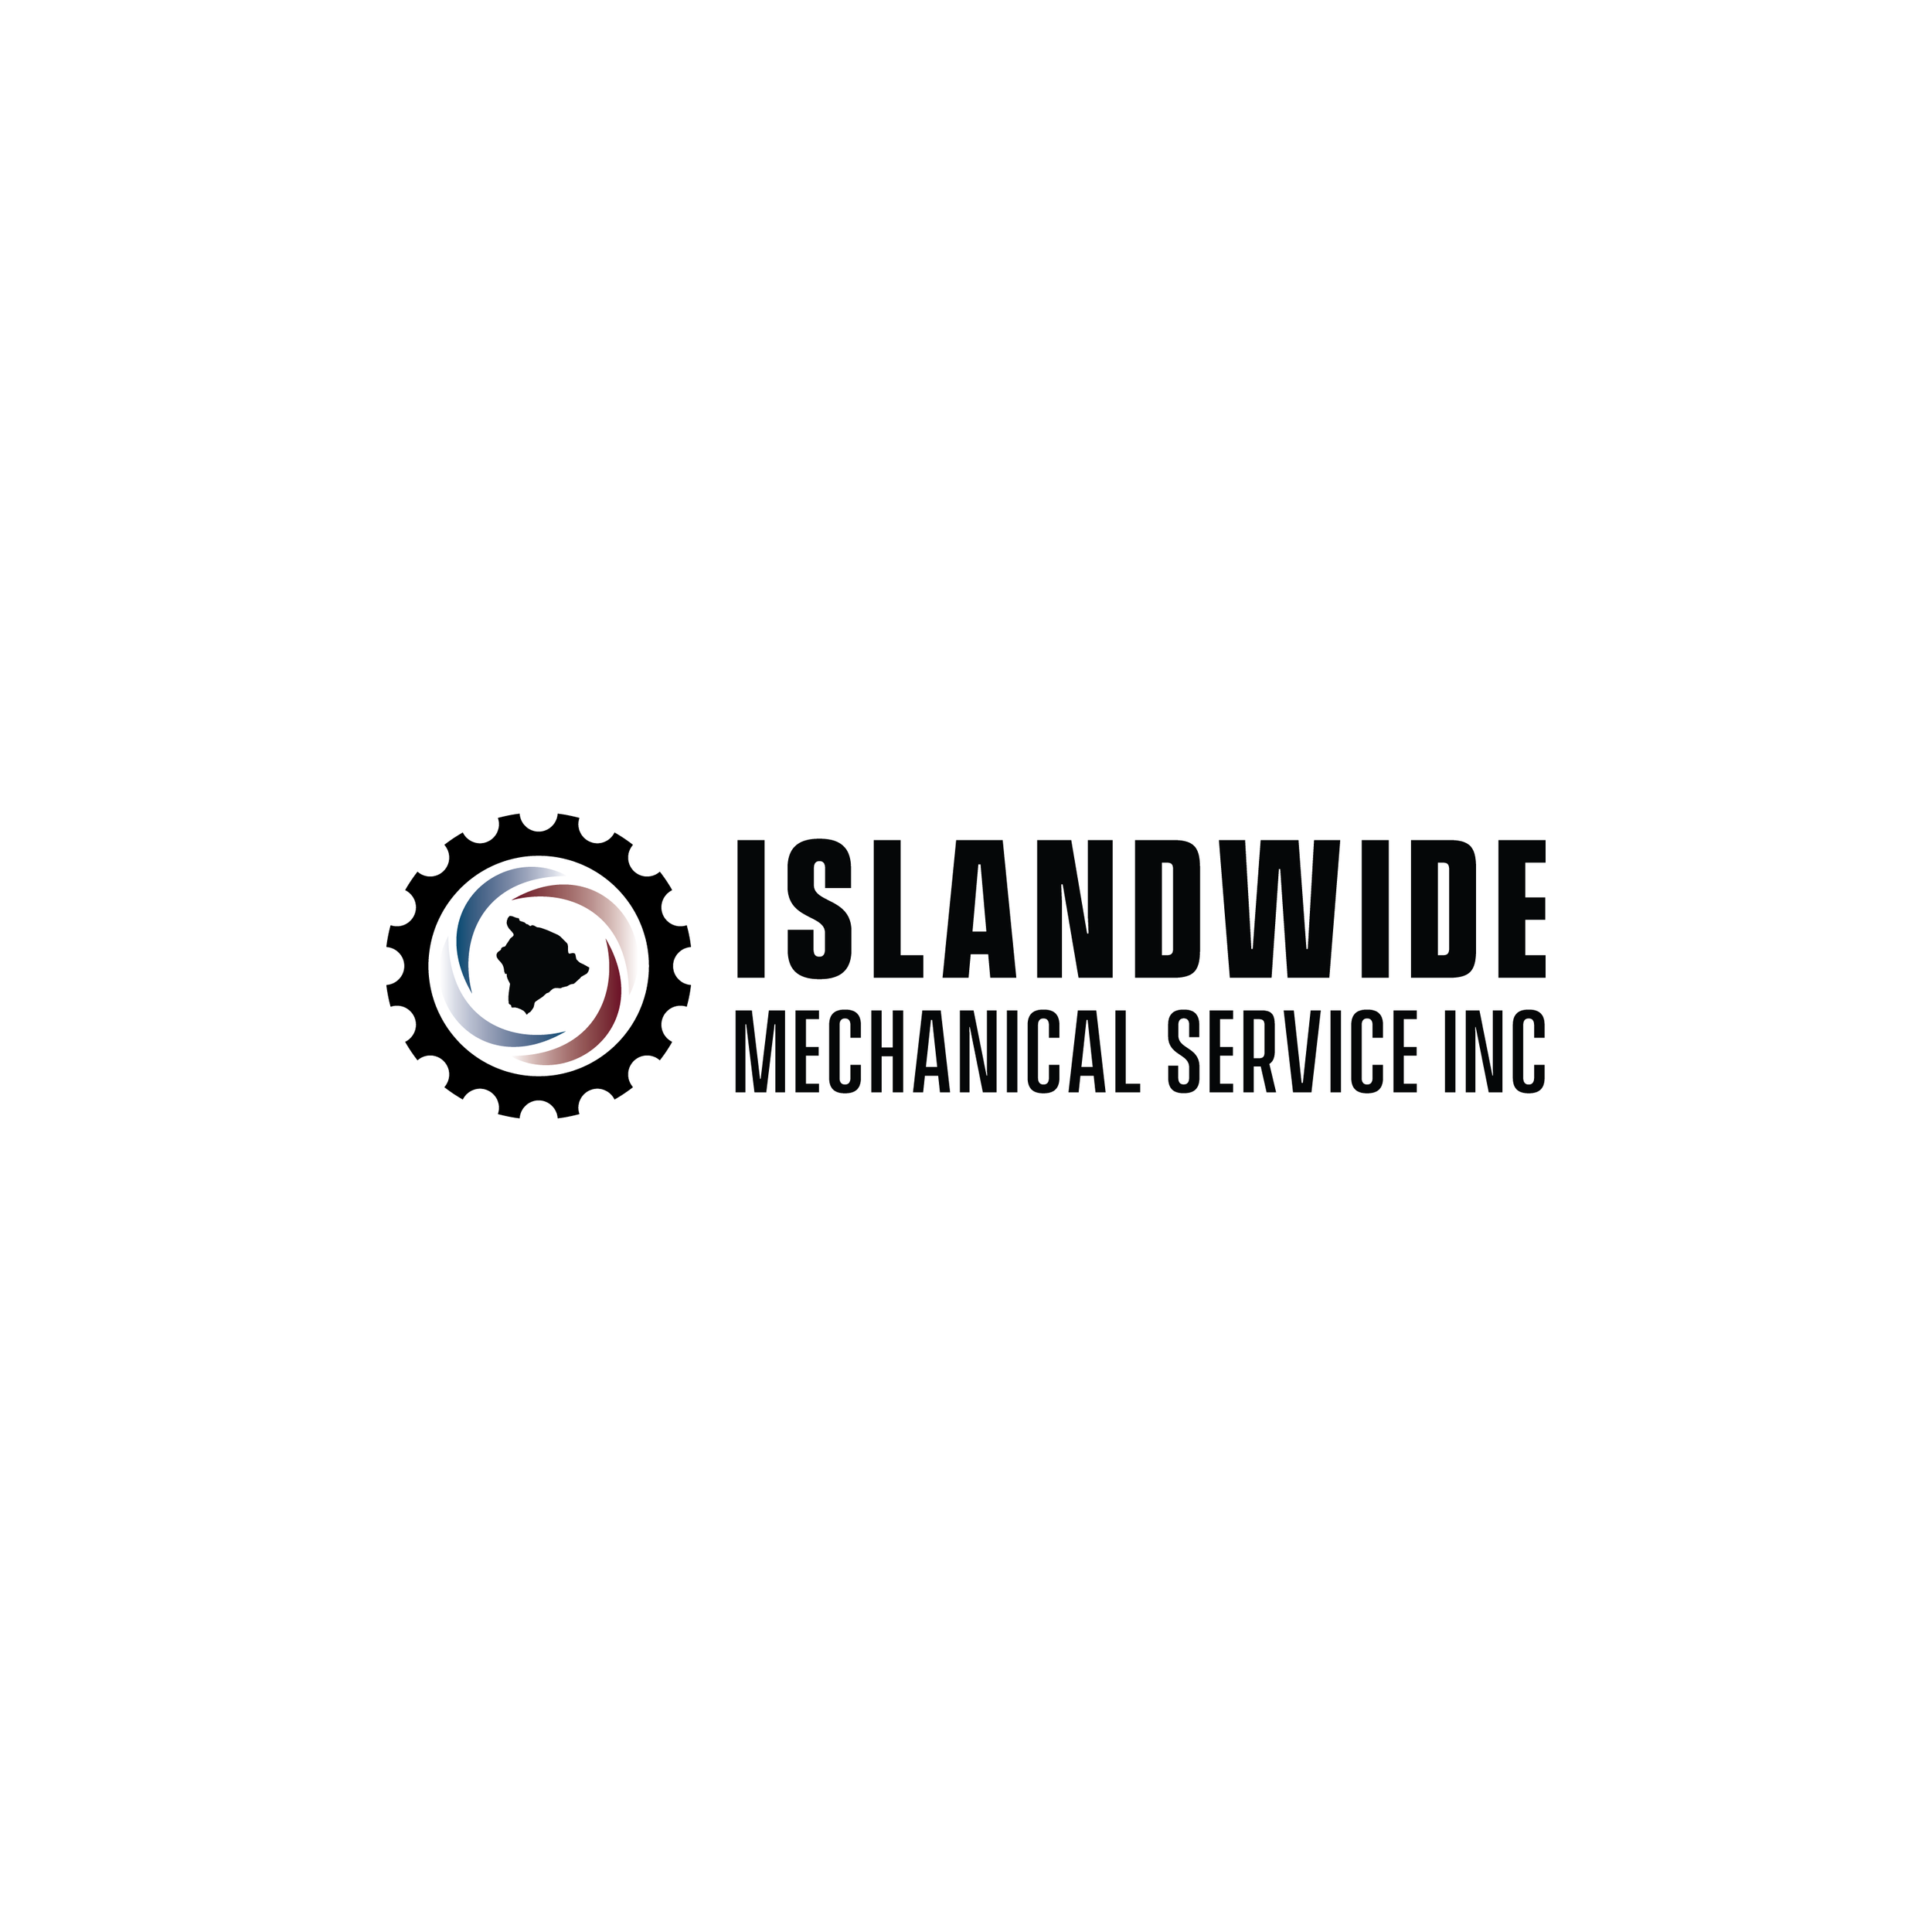 Islandwide Mechanical Service Inc. Logo